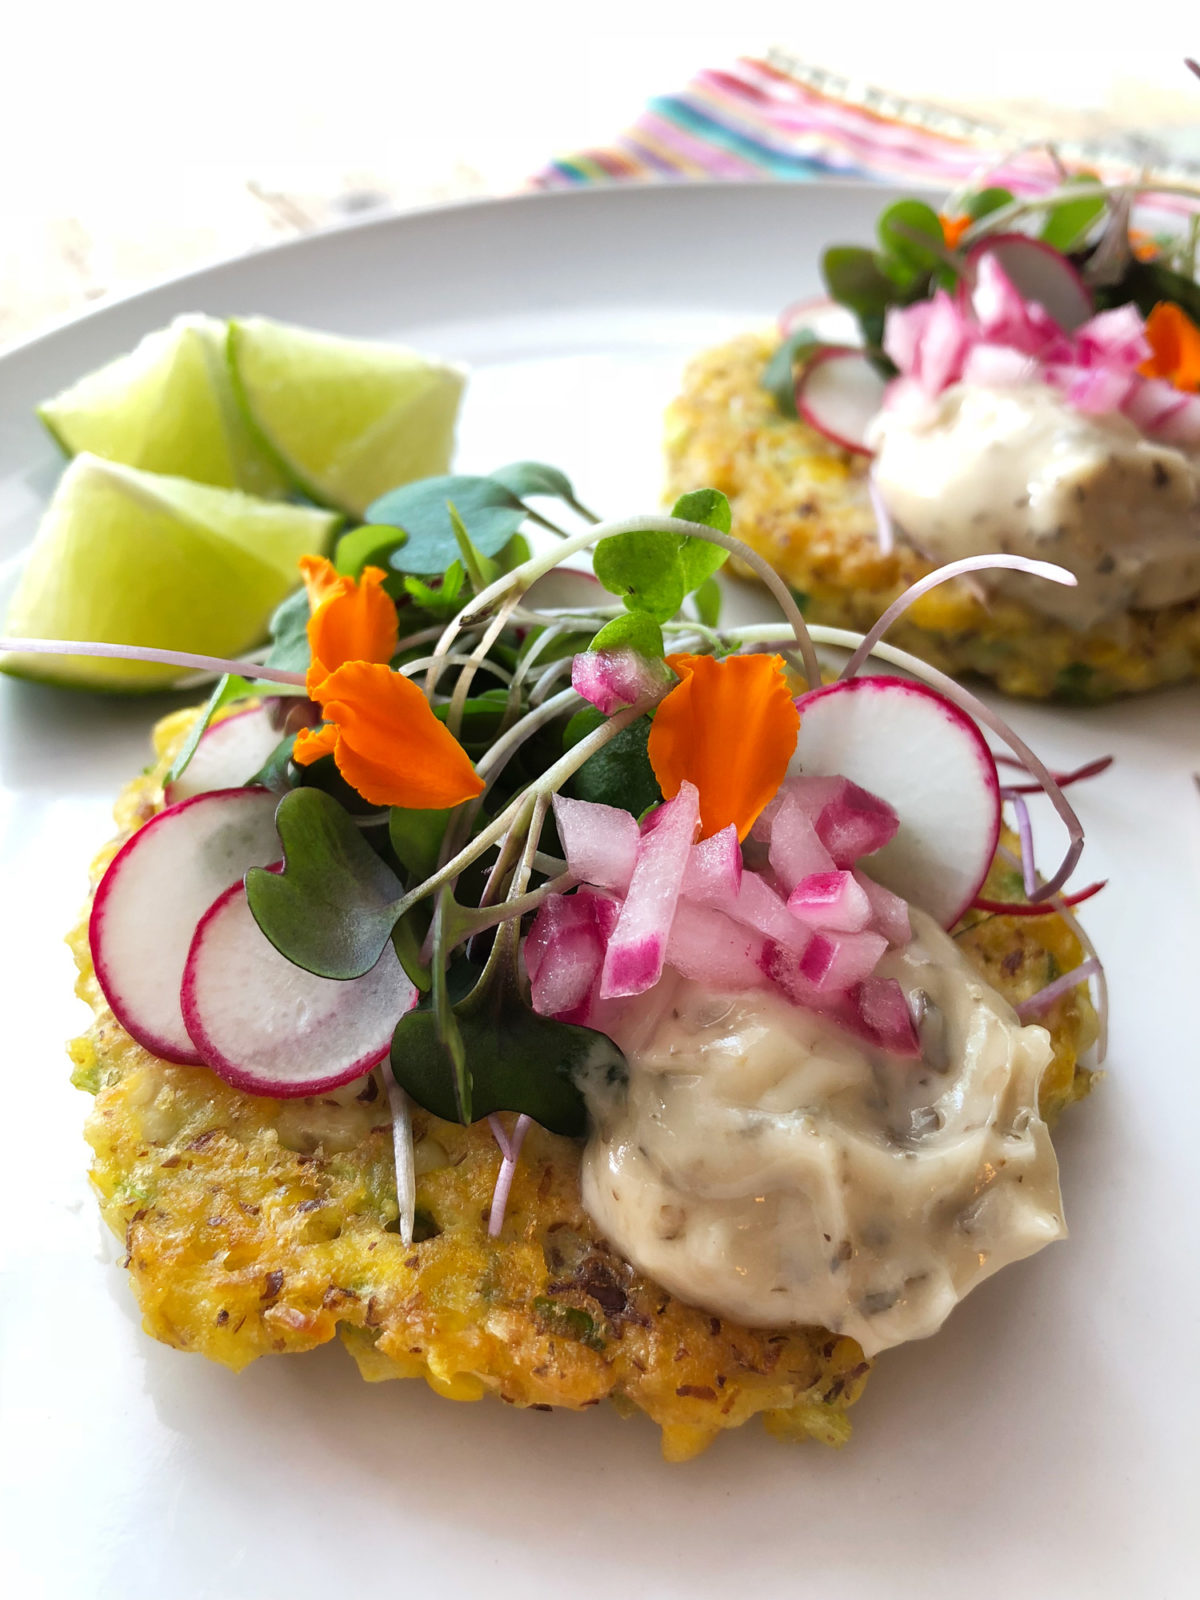 Corn Fritters with Basil & Lemon Aioli by Marisa Ford — Delicious & Sons